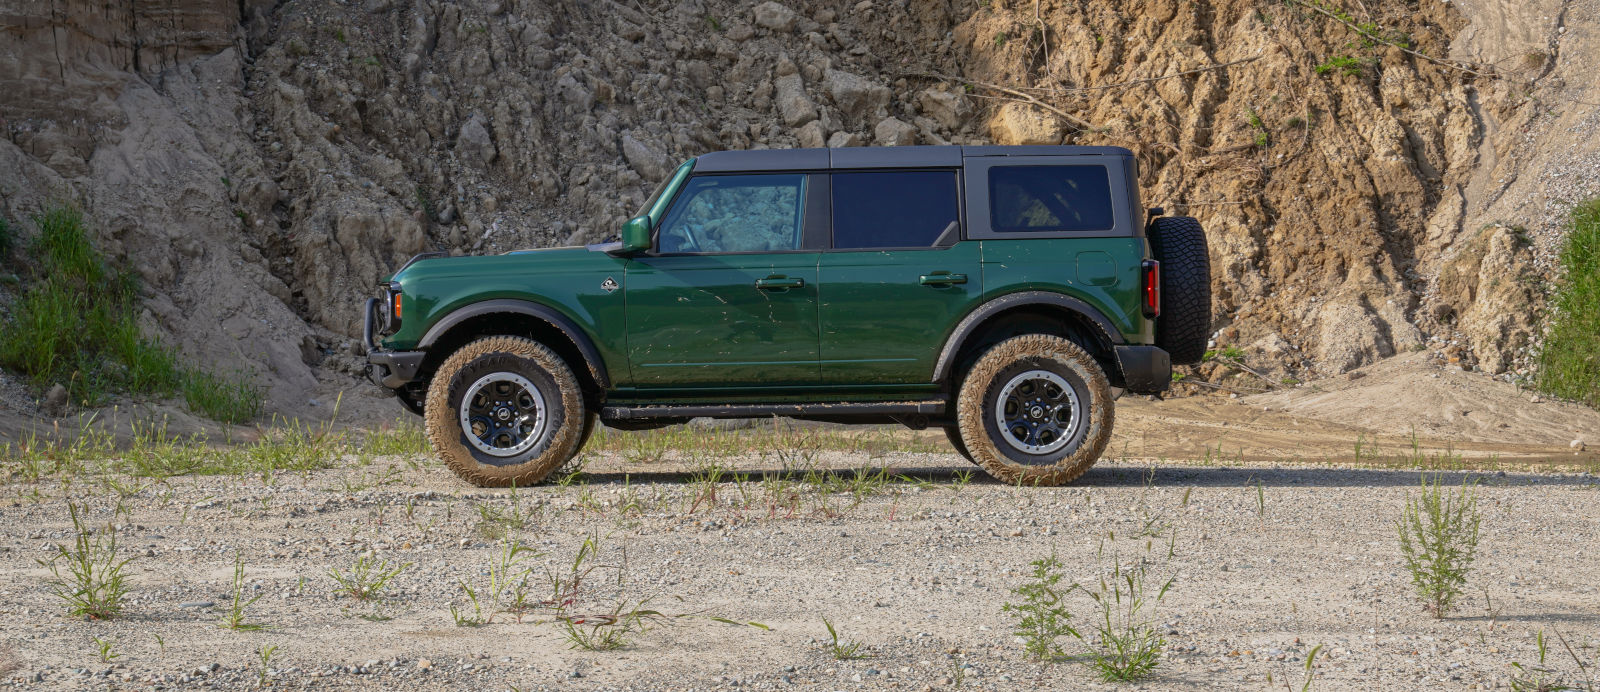 Ford Bronco Releases Two New Hues for '22